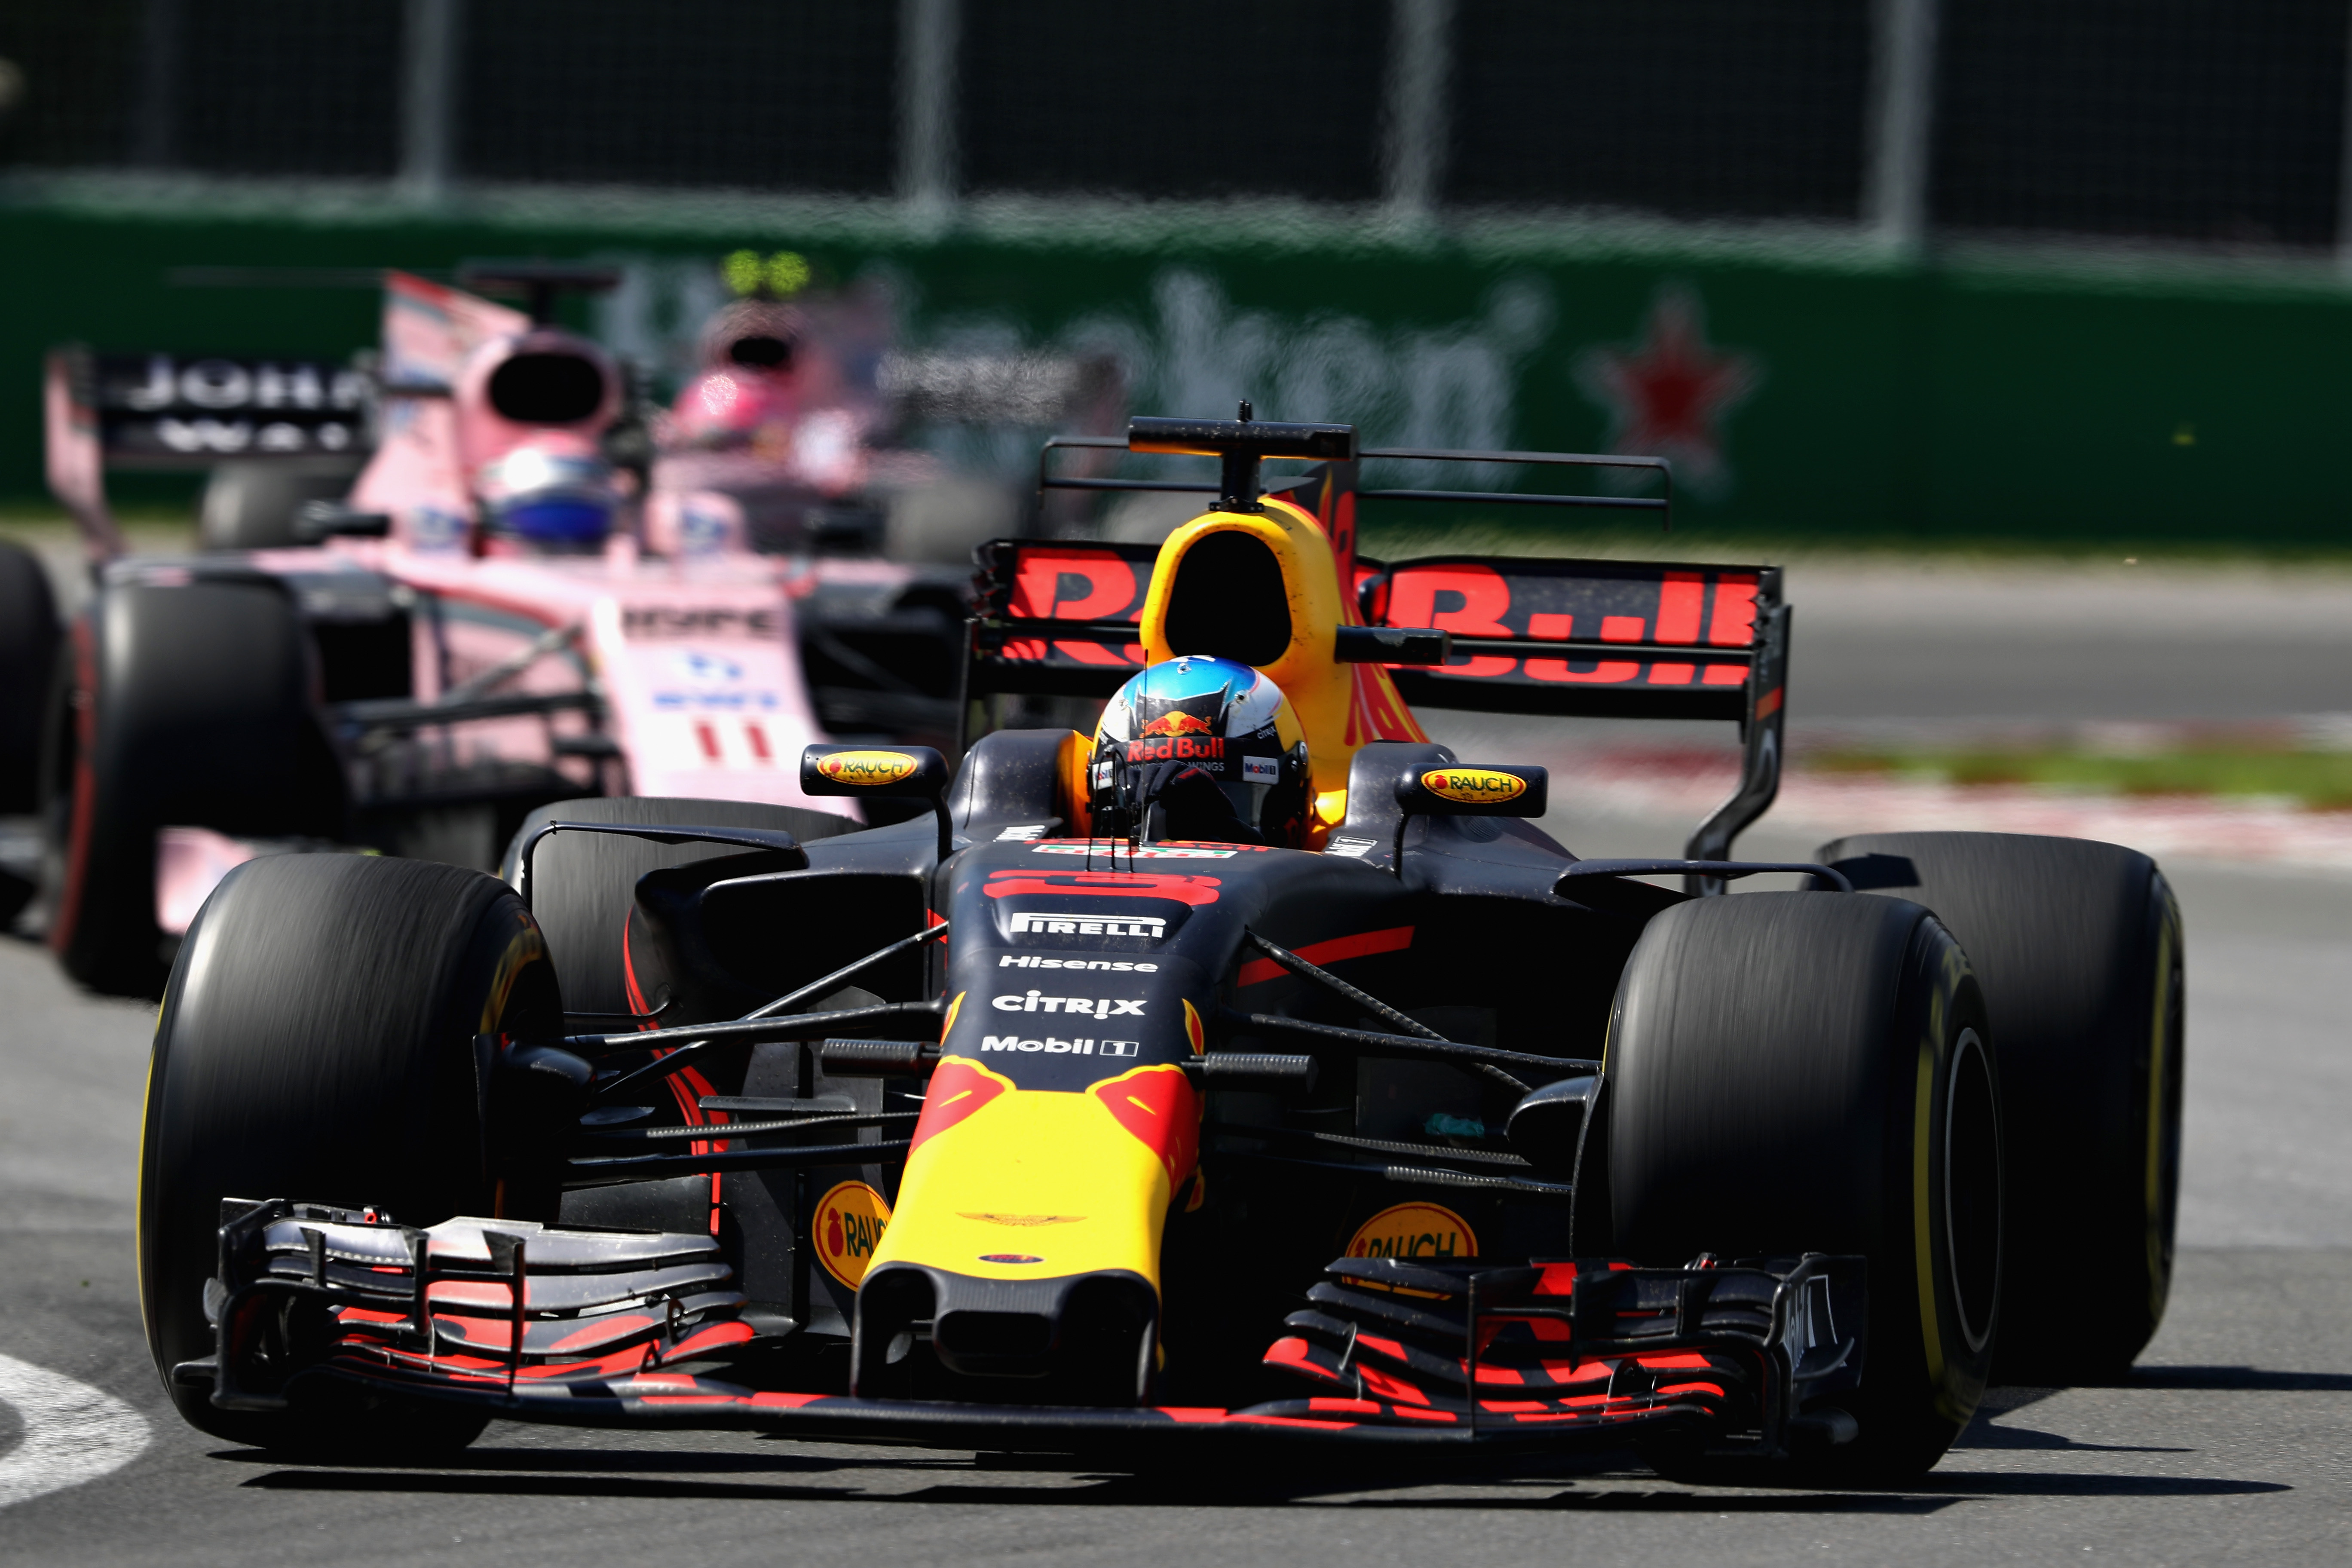 Daniel Ricciardo on track during the Canadian Formula One Grand Prix at Circuit Gilles Villeneuve. Picture: Mark Thompson/Getty Images